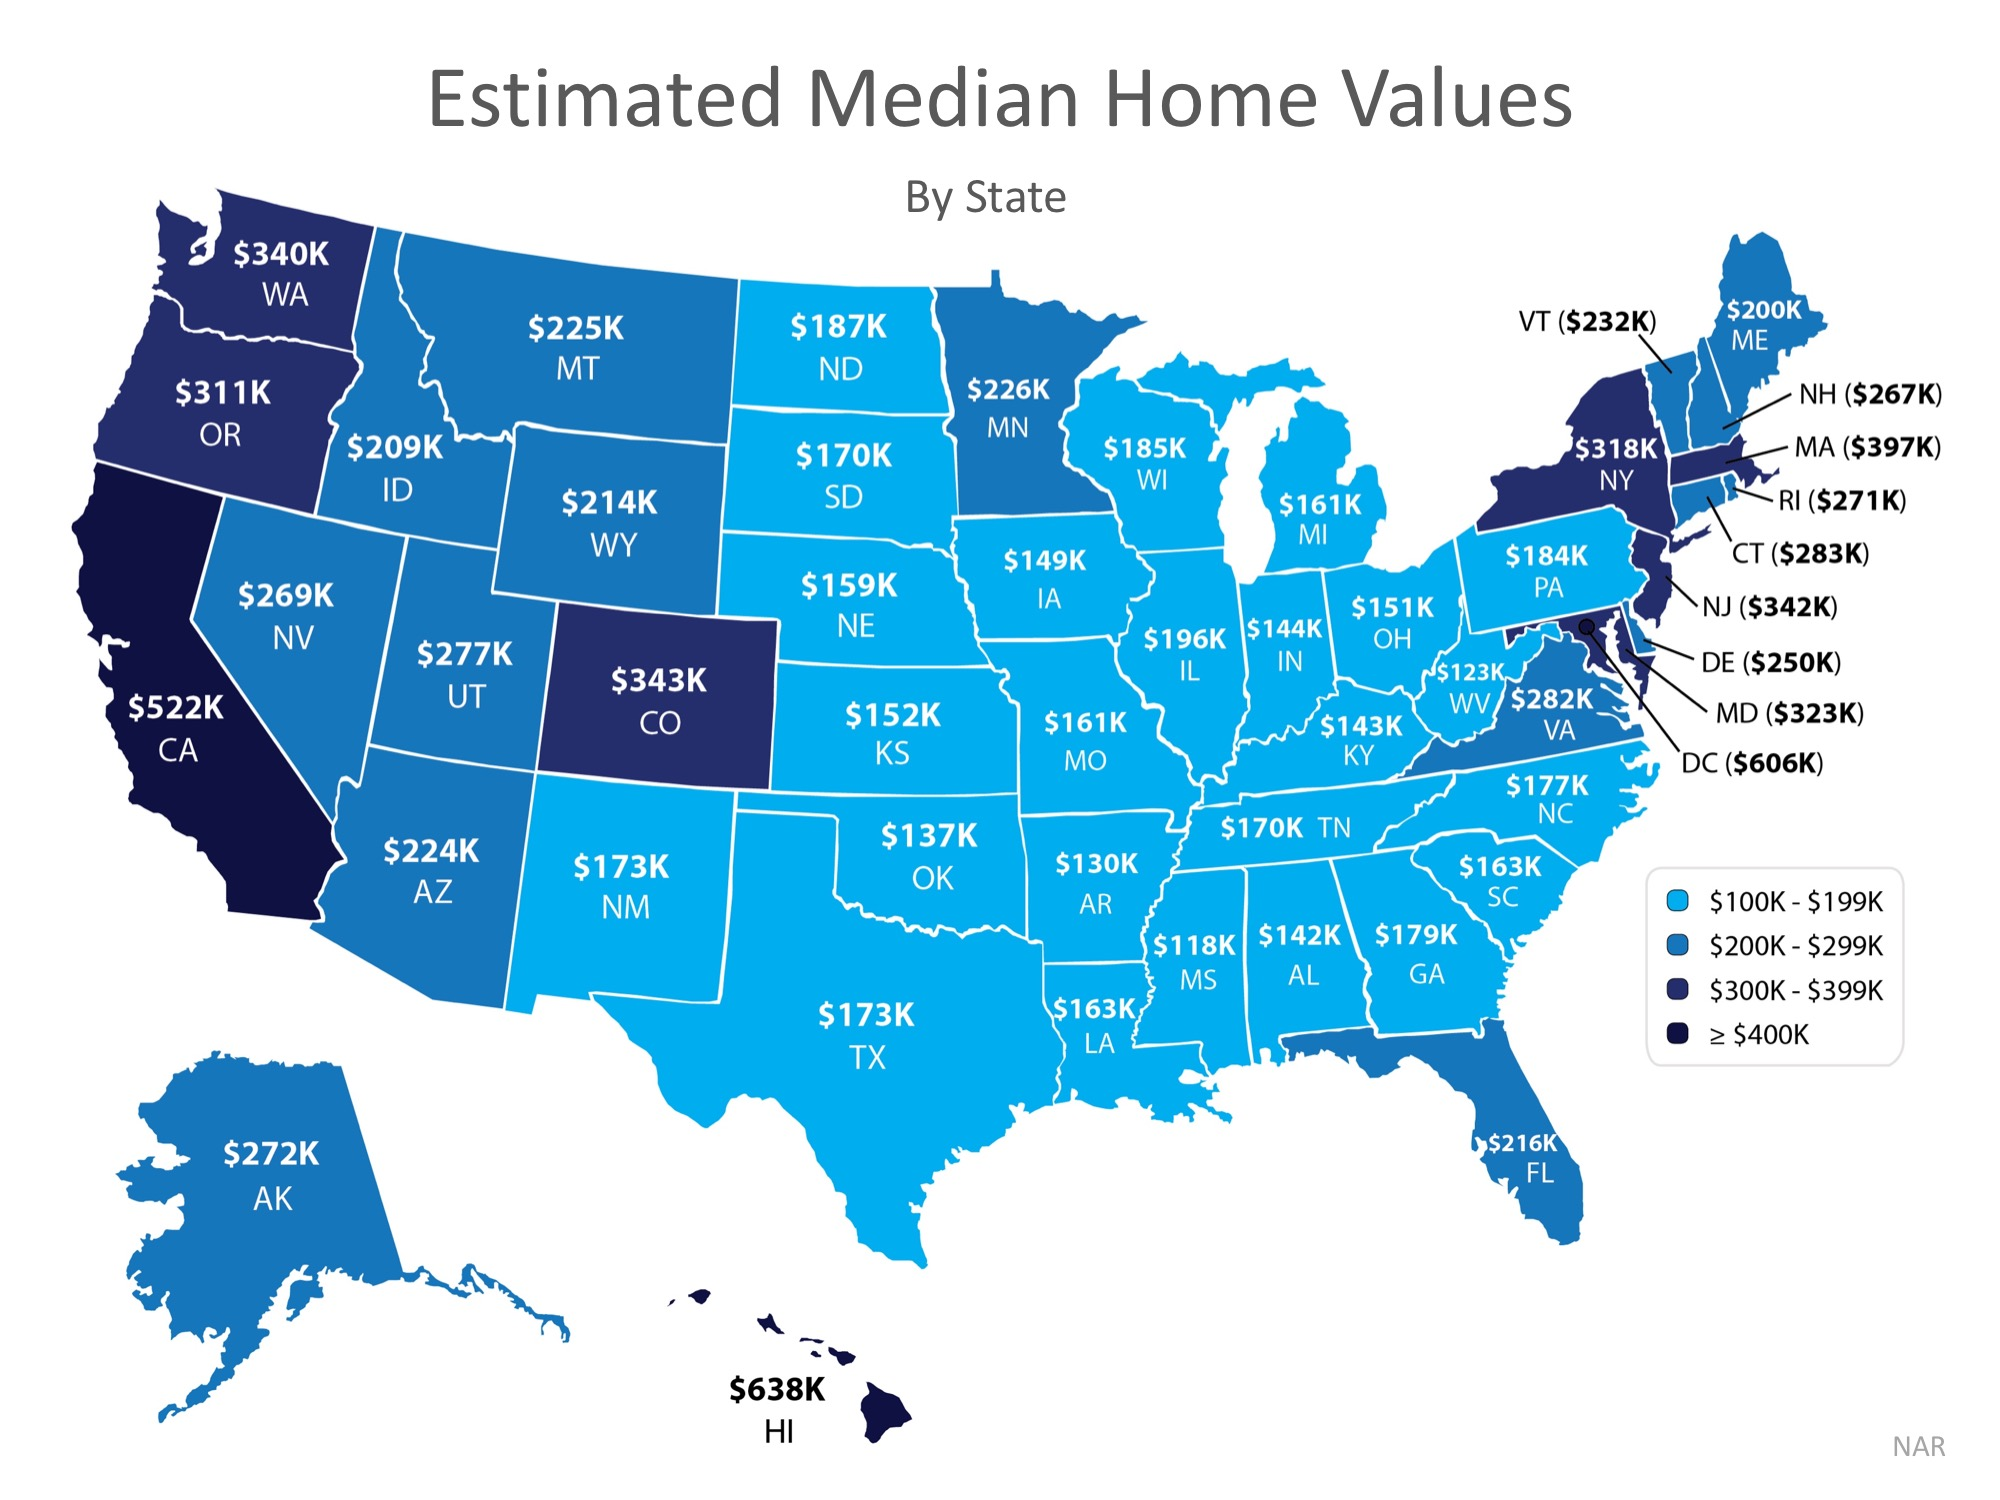 Median Home Values by State